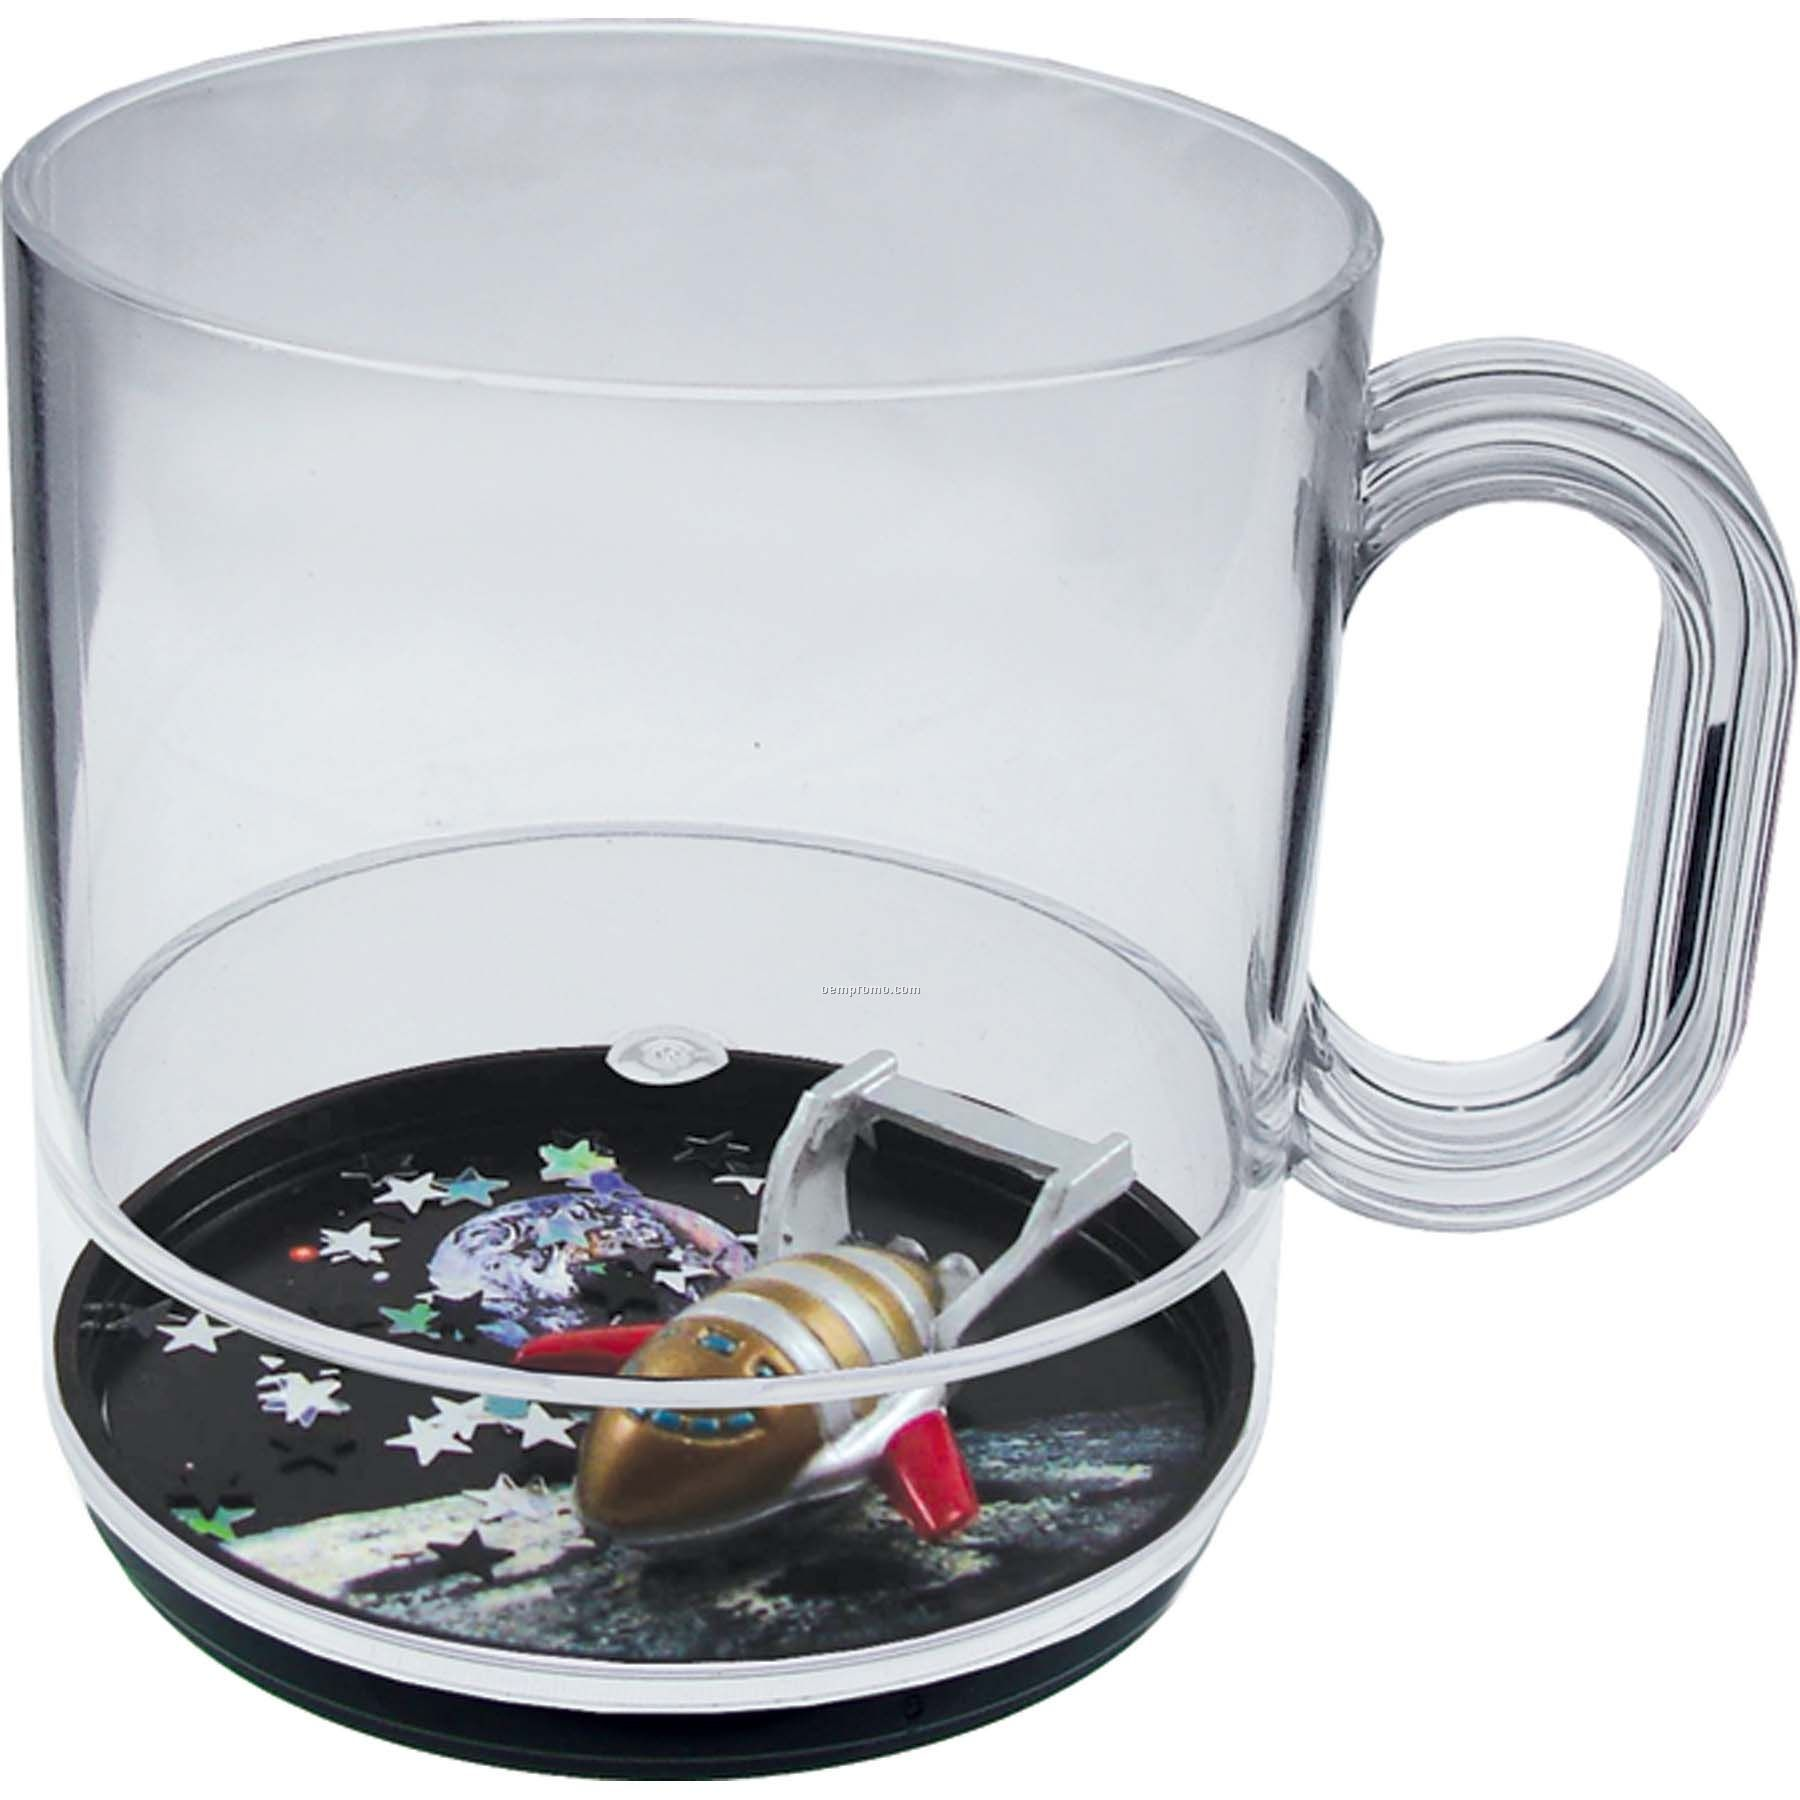 Space Voyager 12 Oz. Compartment Coffee Mug